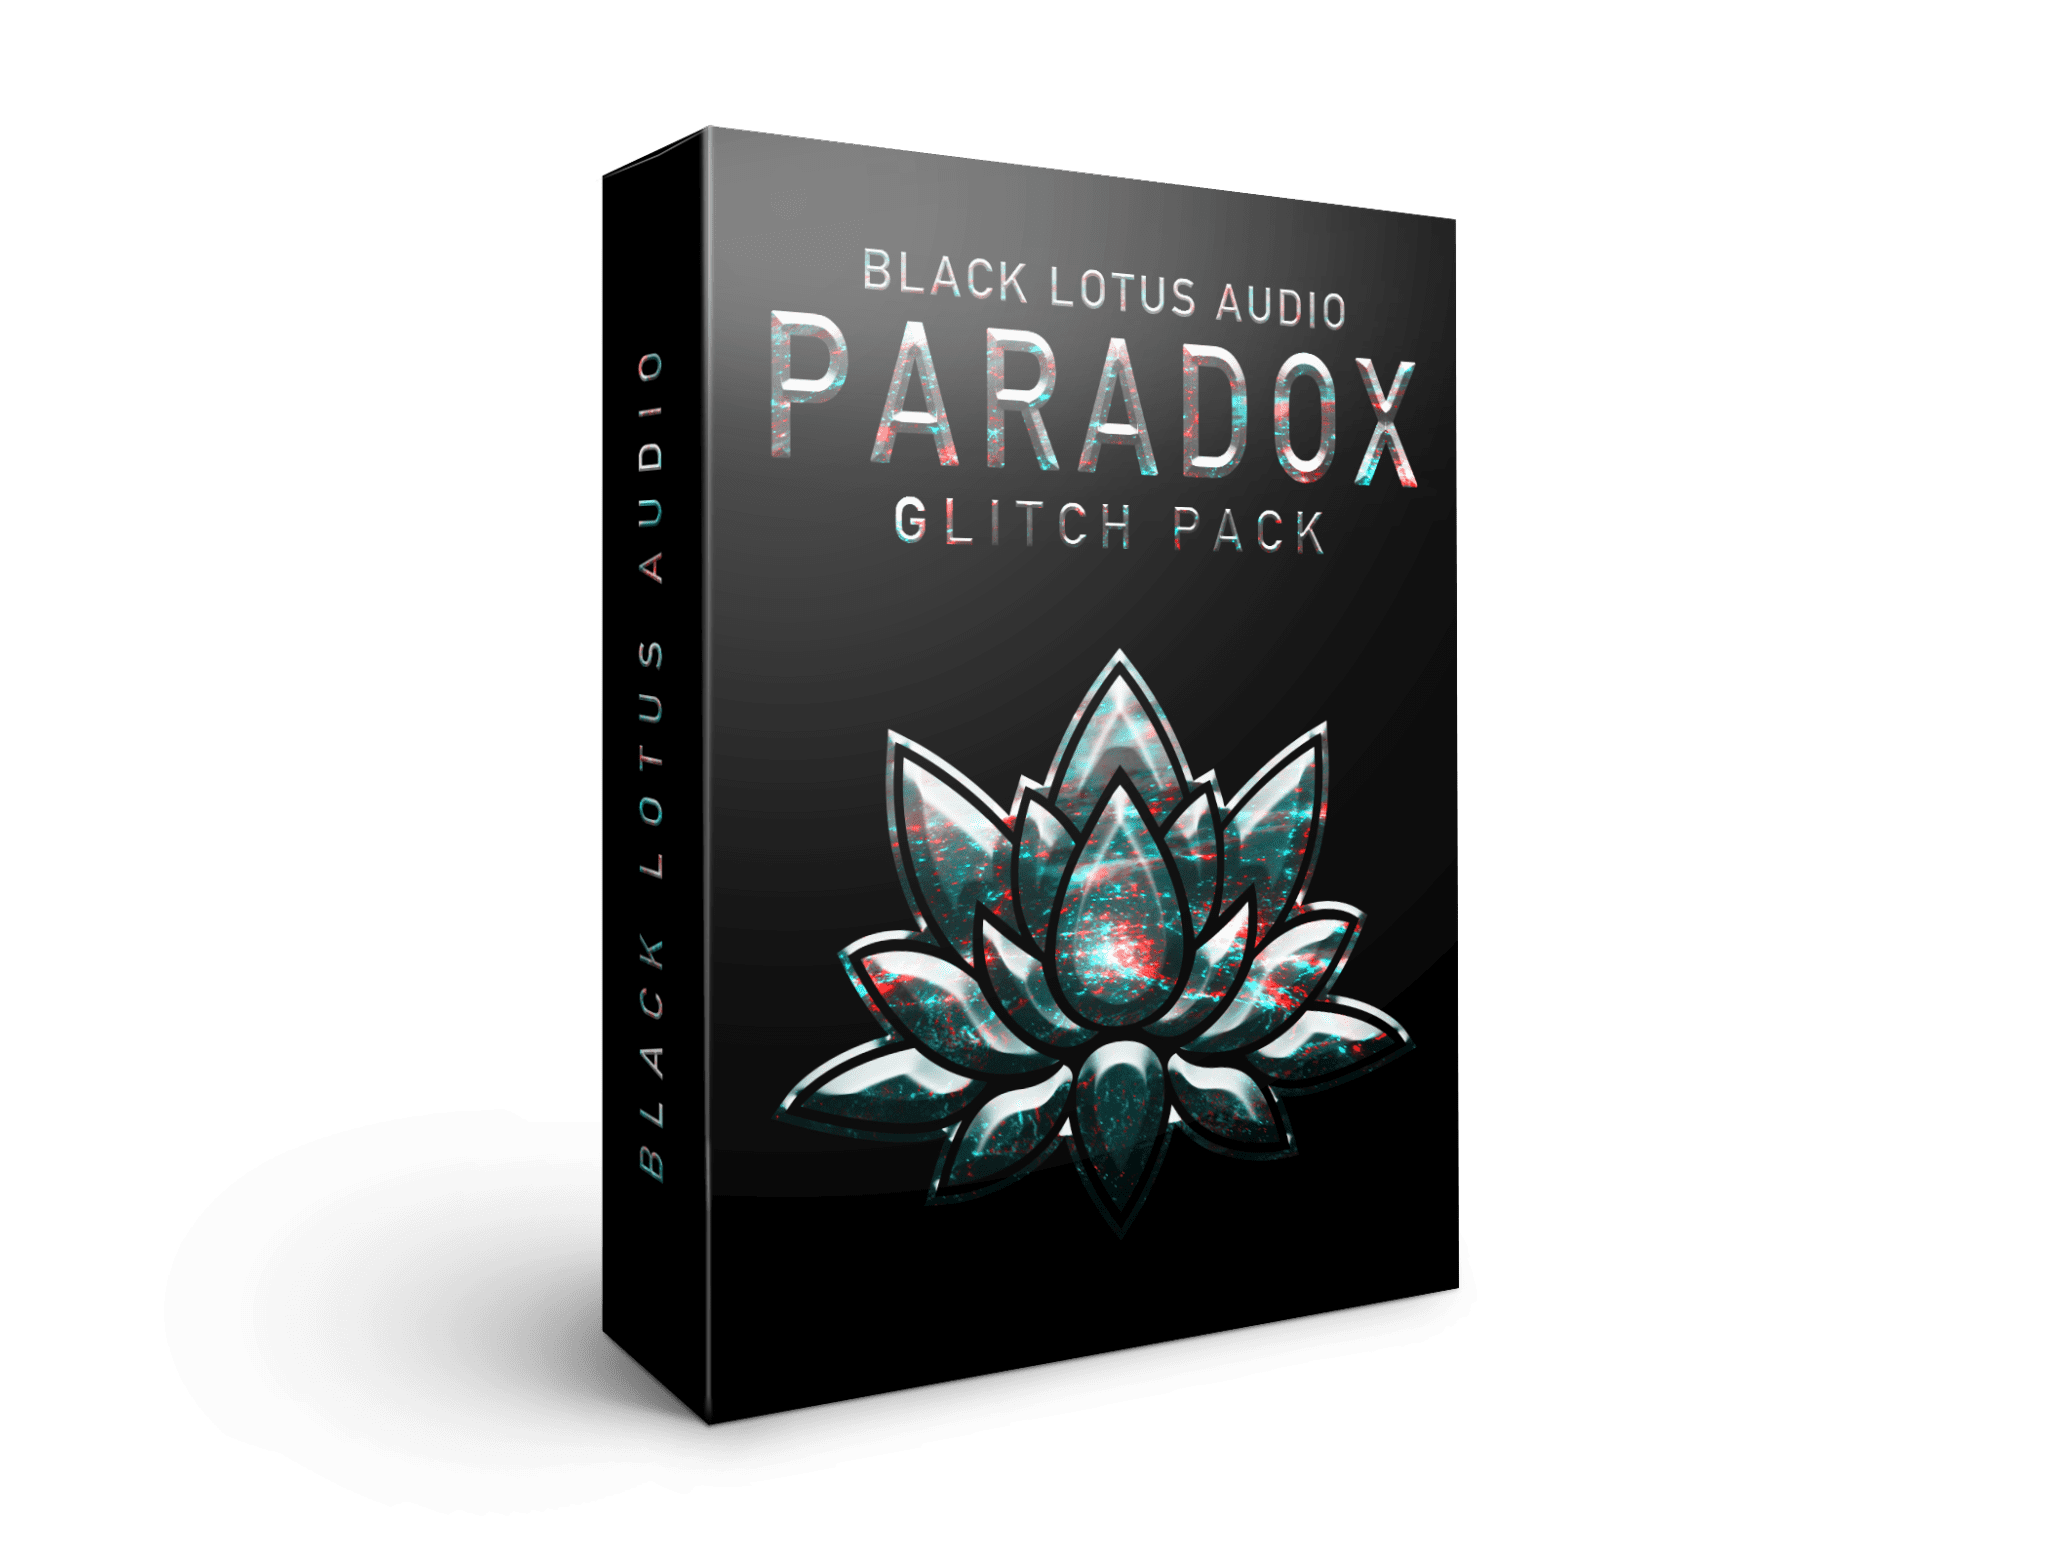 glitch sample pack inspired by alien monsters - paradox glitch sample pack